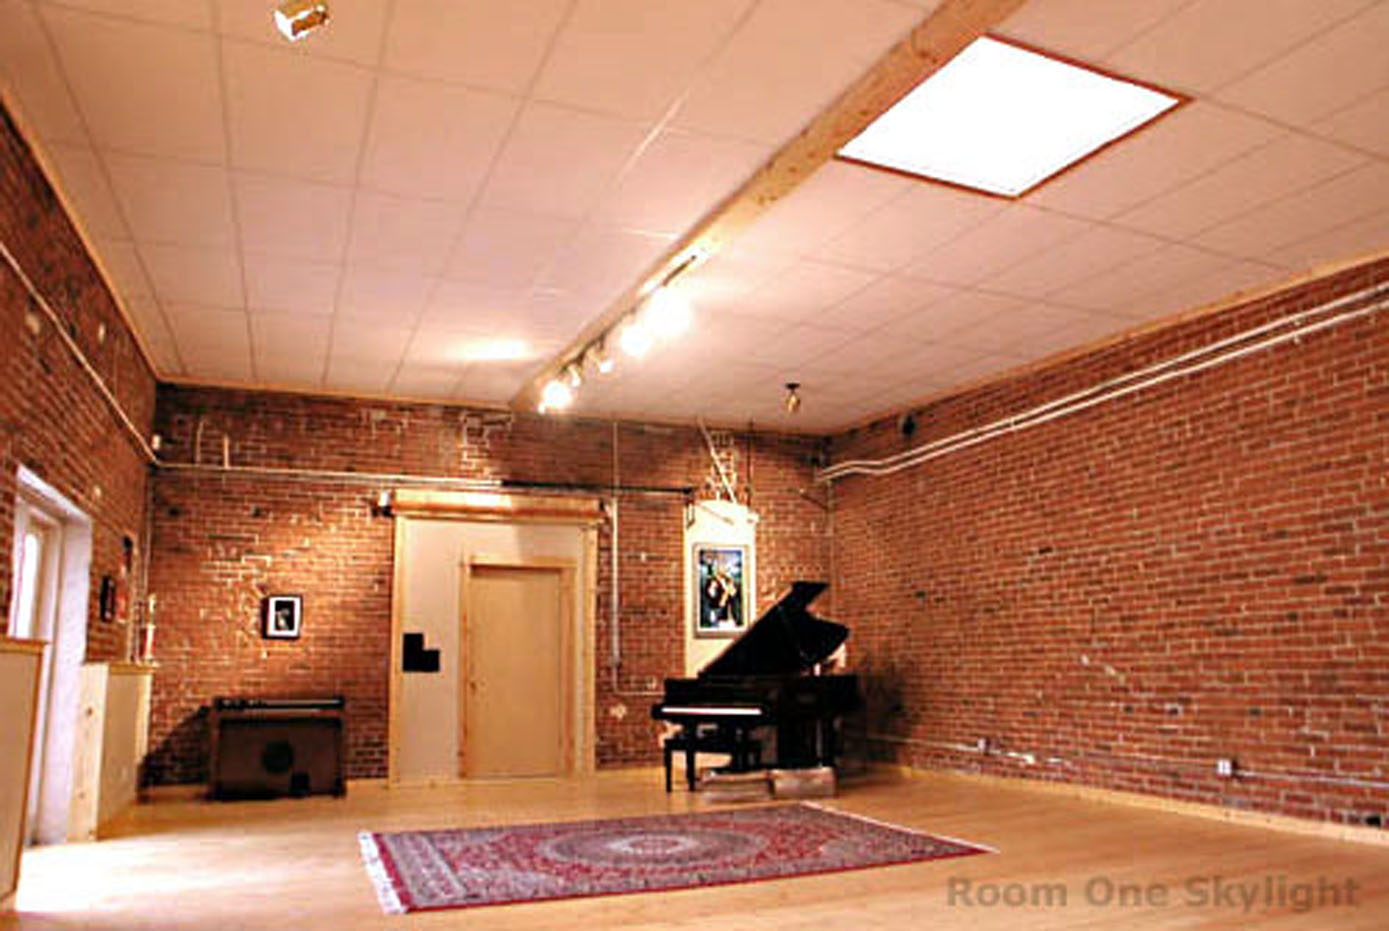 this is the studio i will be using for the live studio shoot in the